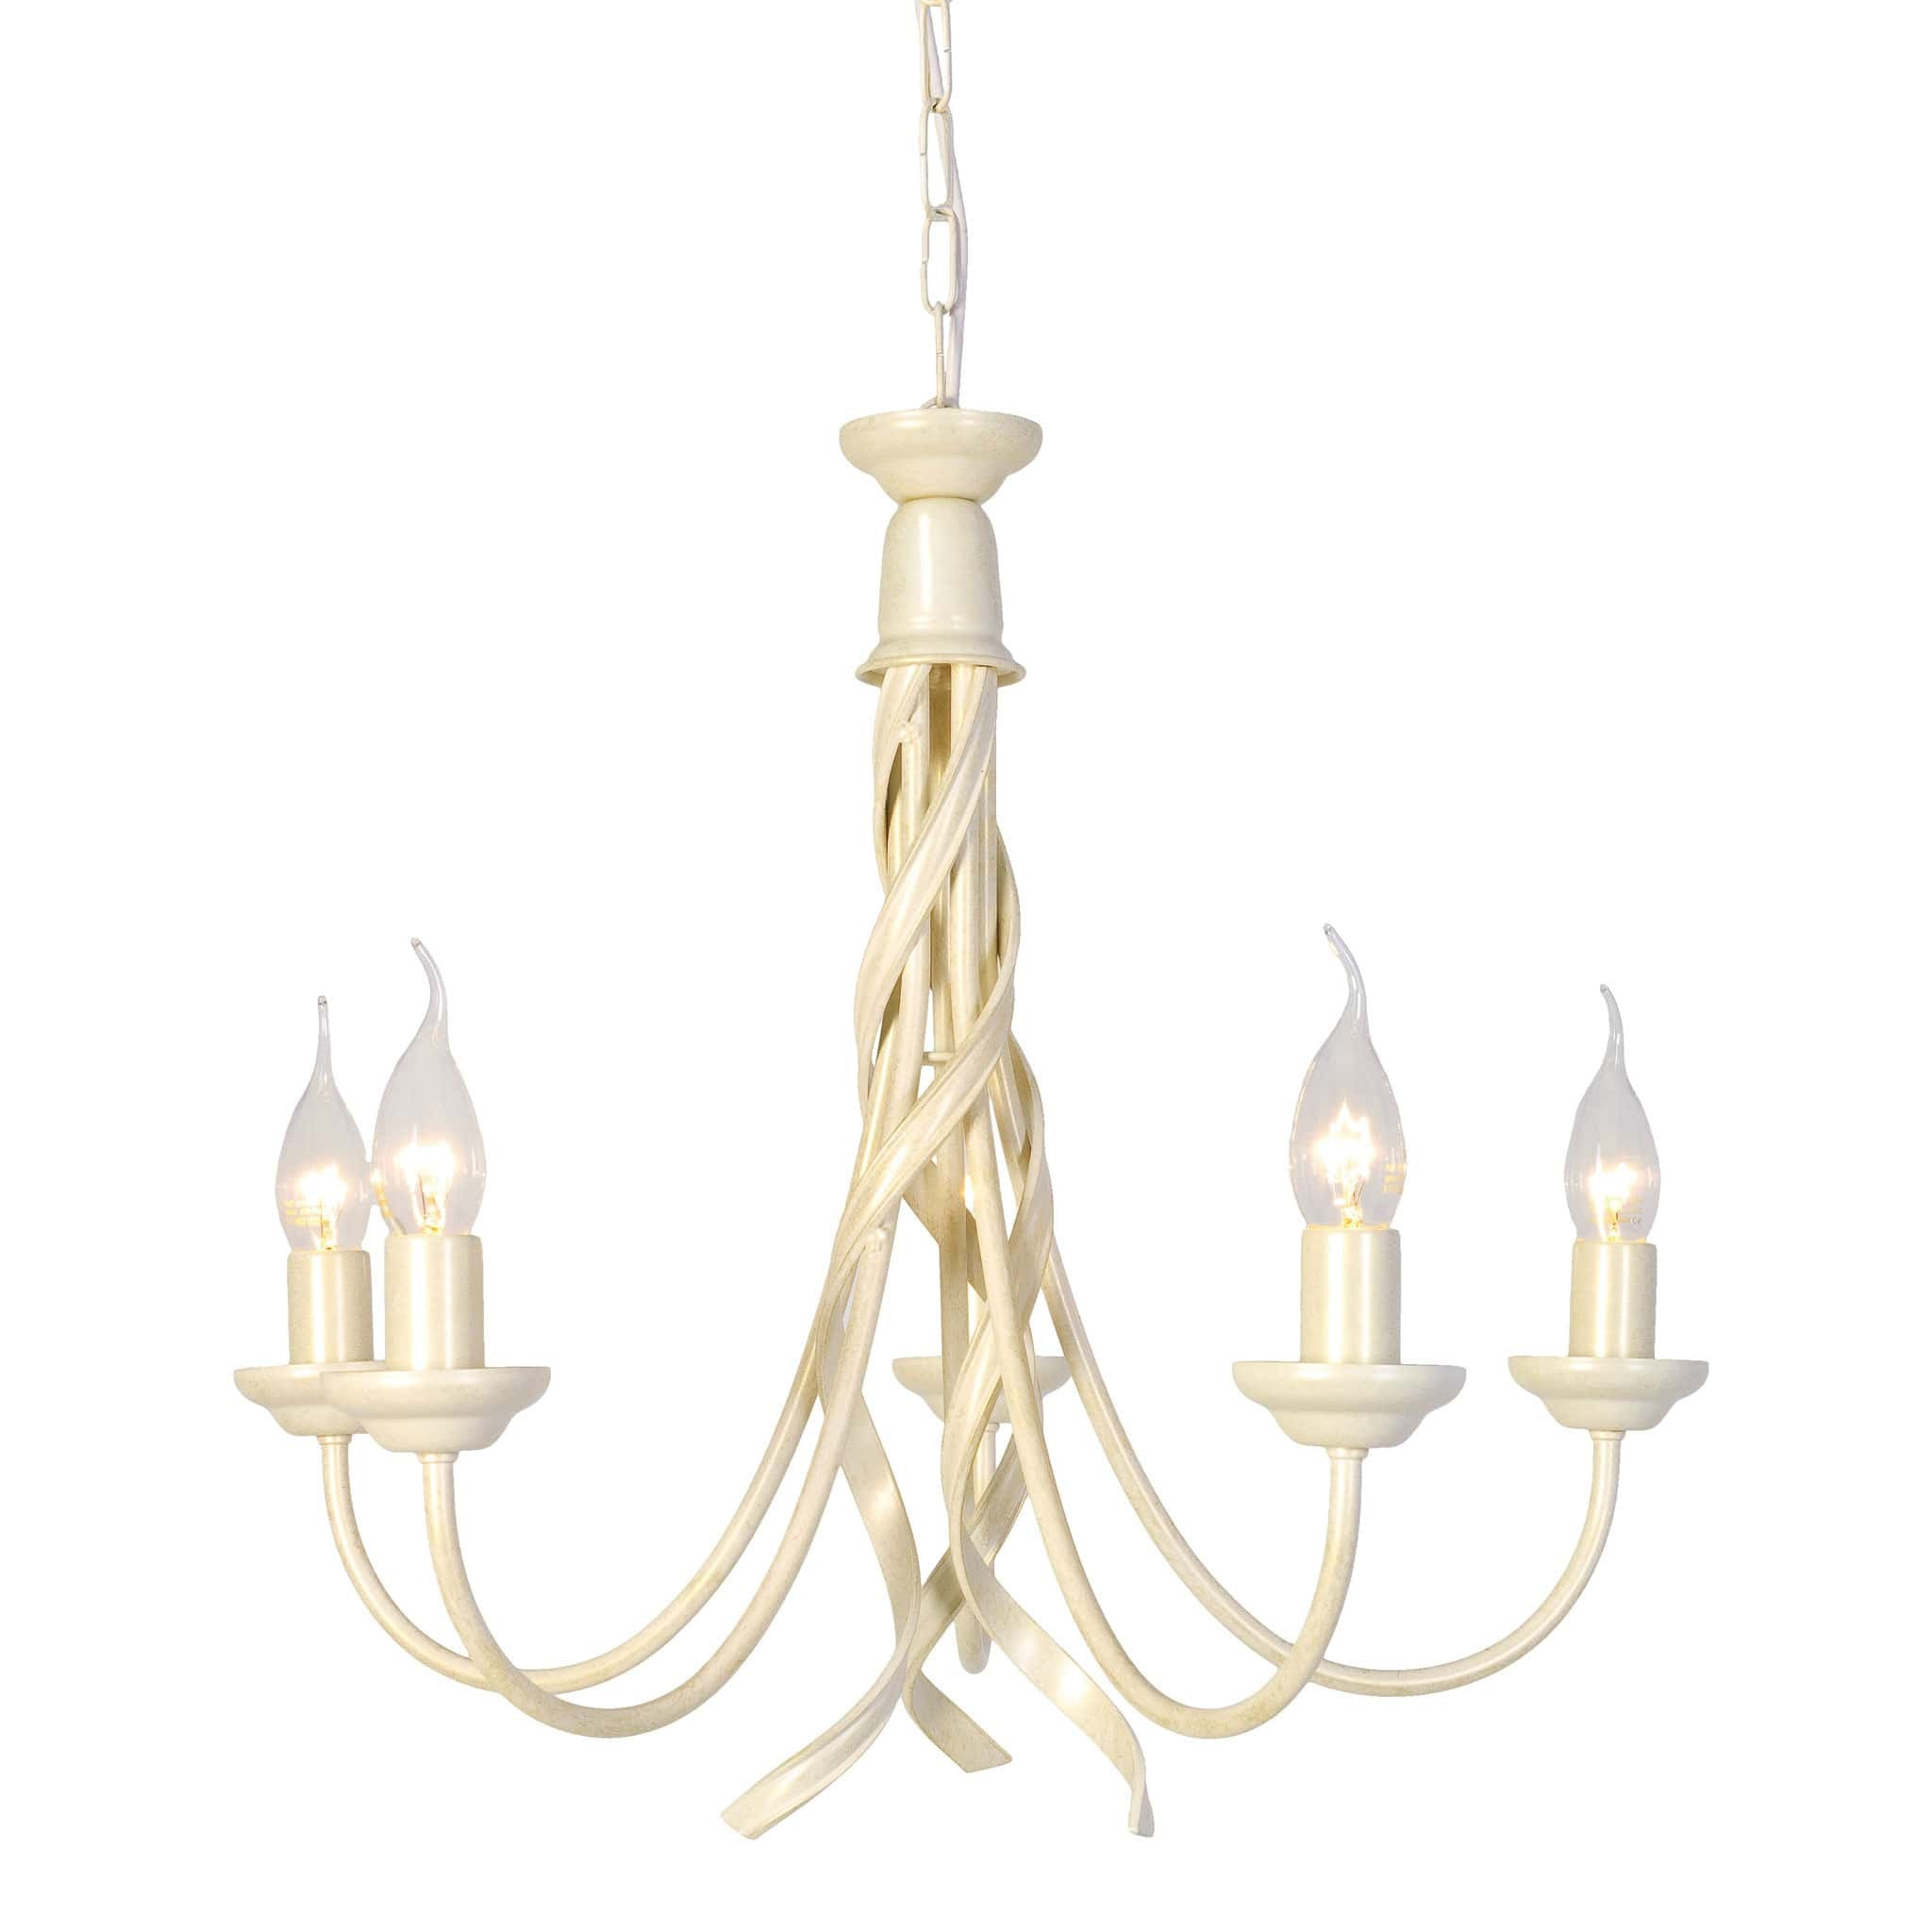 Elstead Ribbon 5 Light Ivory Gold Candle Chandelier